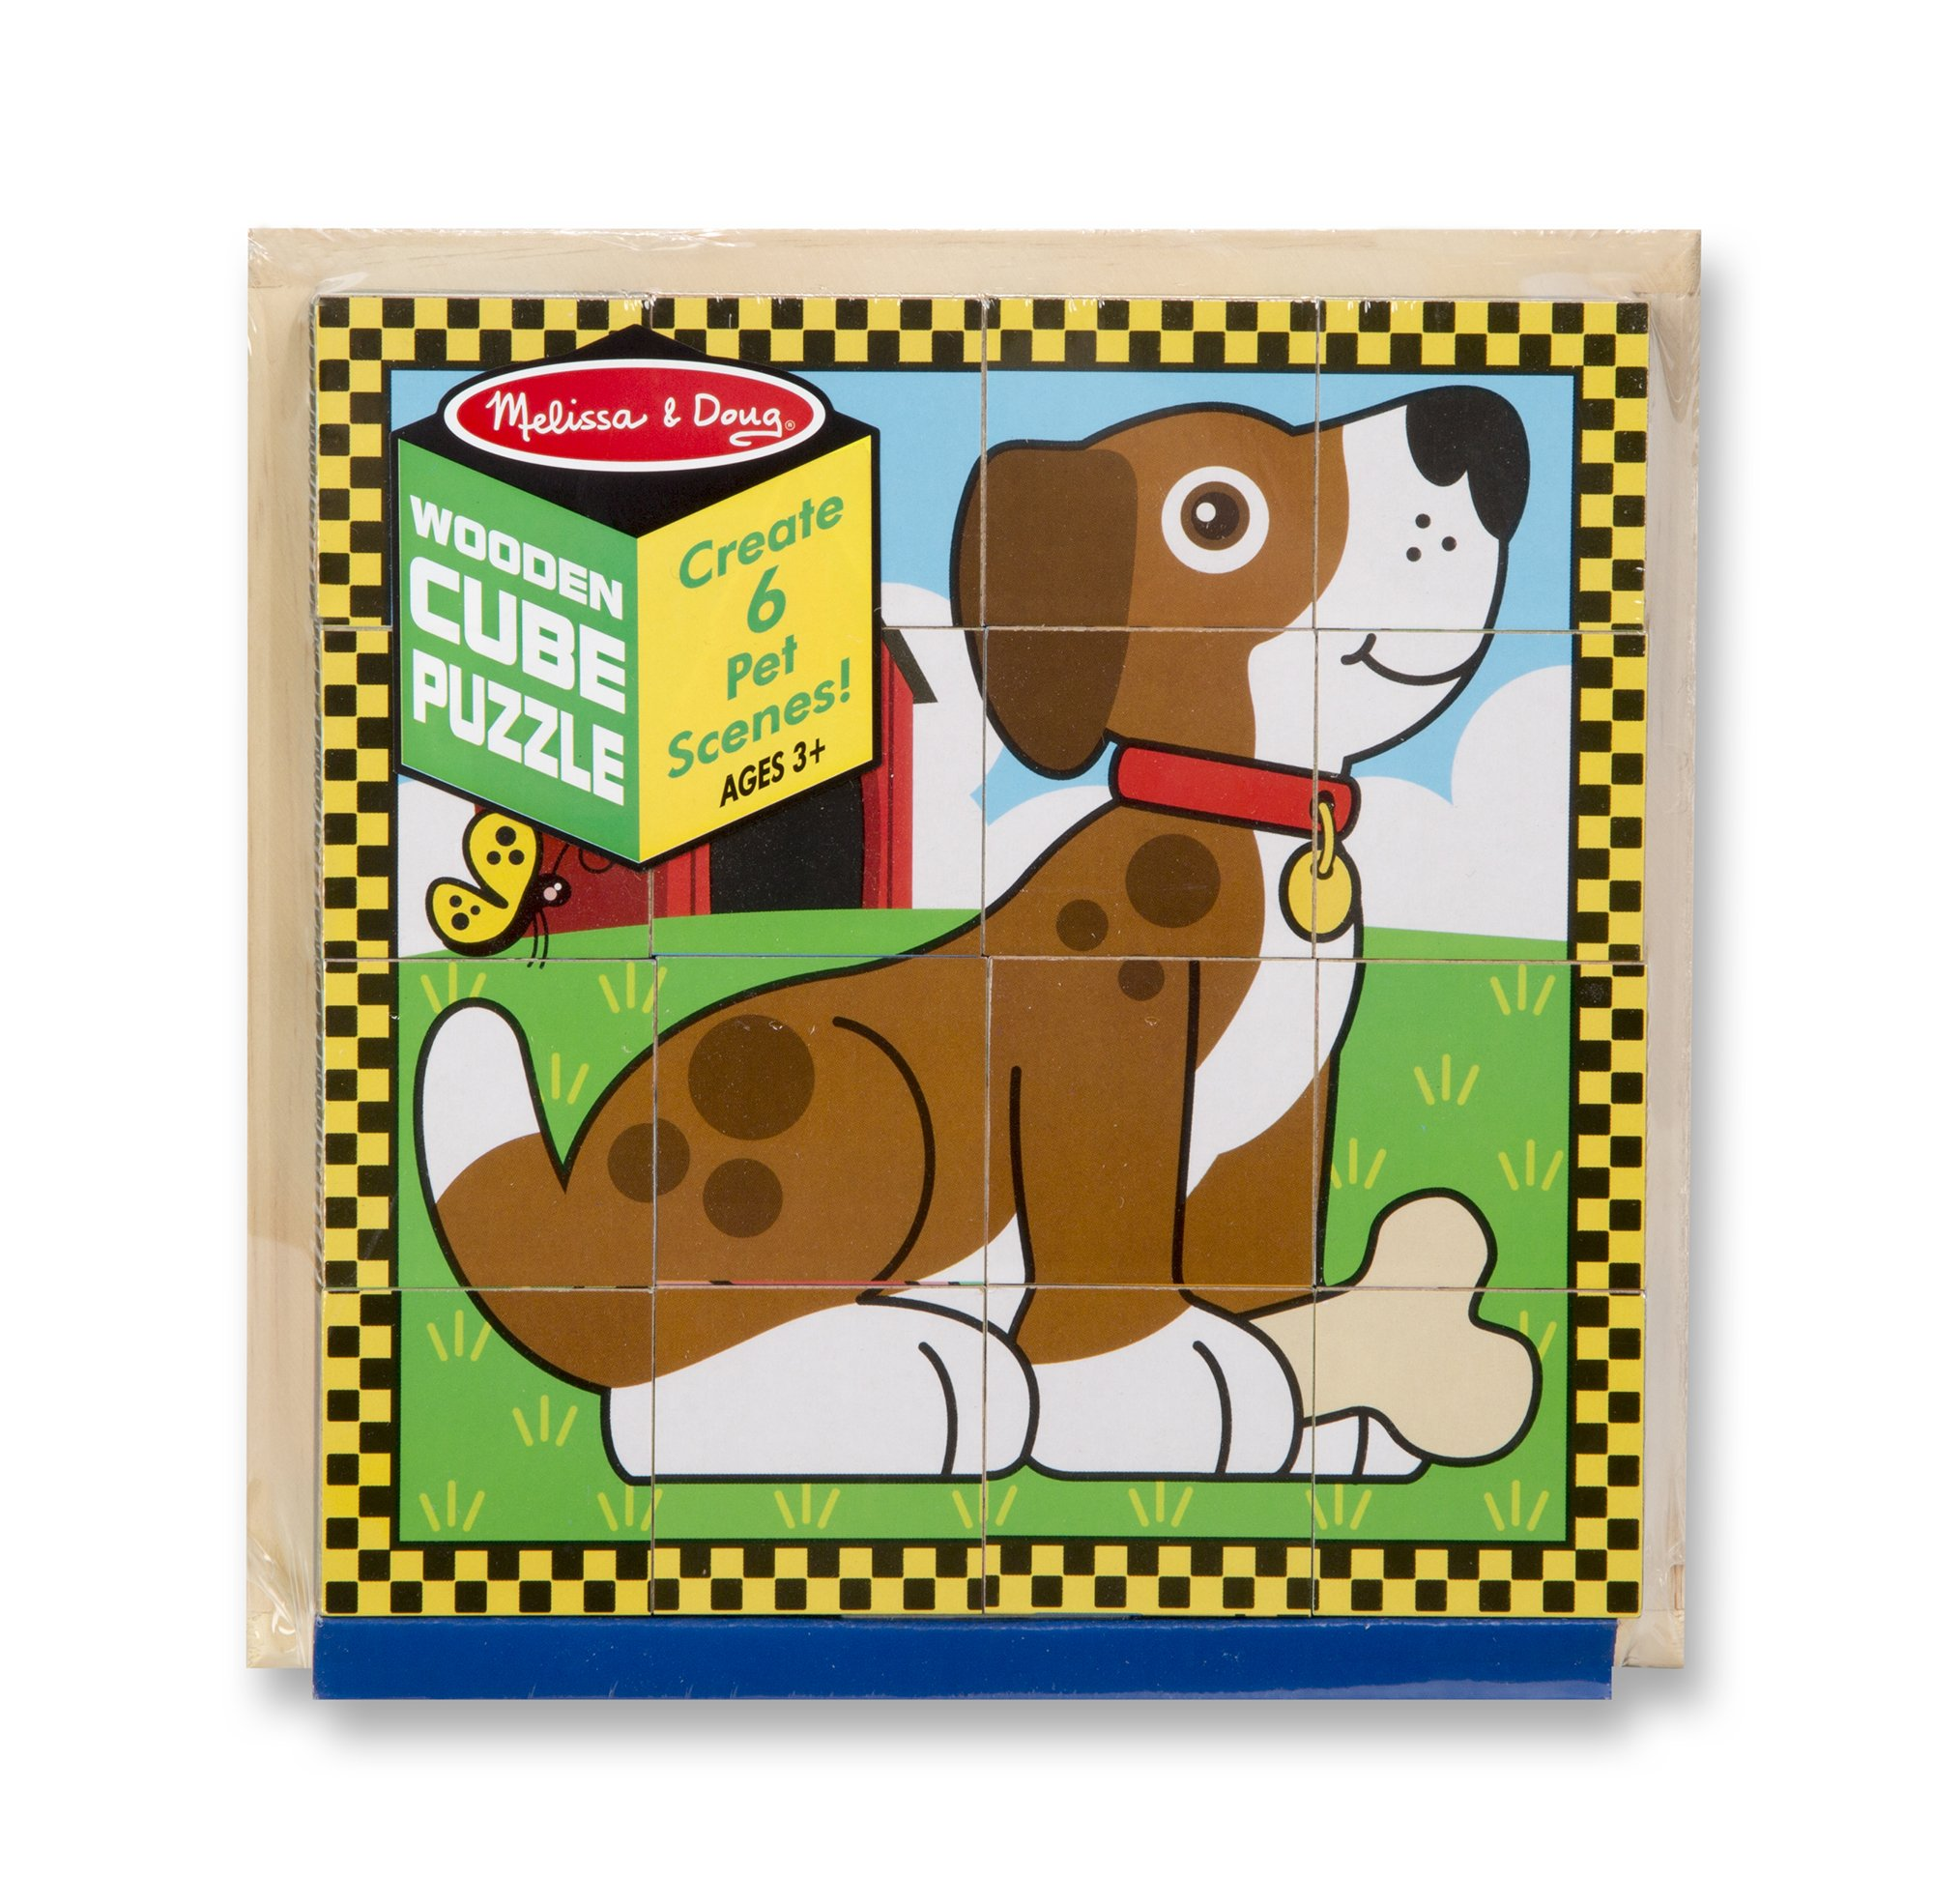 Melissa & Doug Pets Wooden Cube Puzzle With Storage Tray (16 pcs) by Melissa & Doug (Image #1)